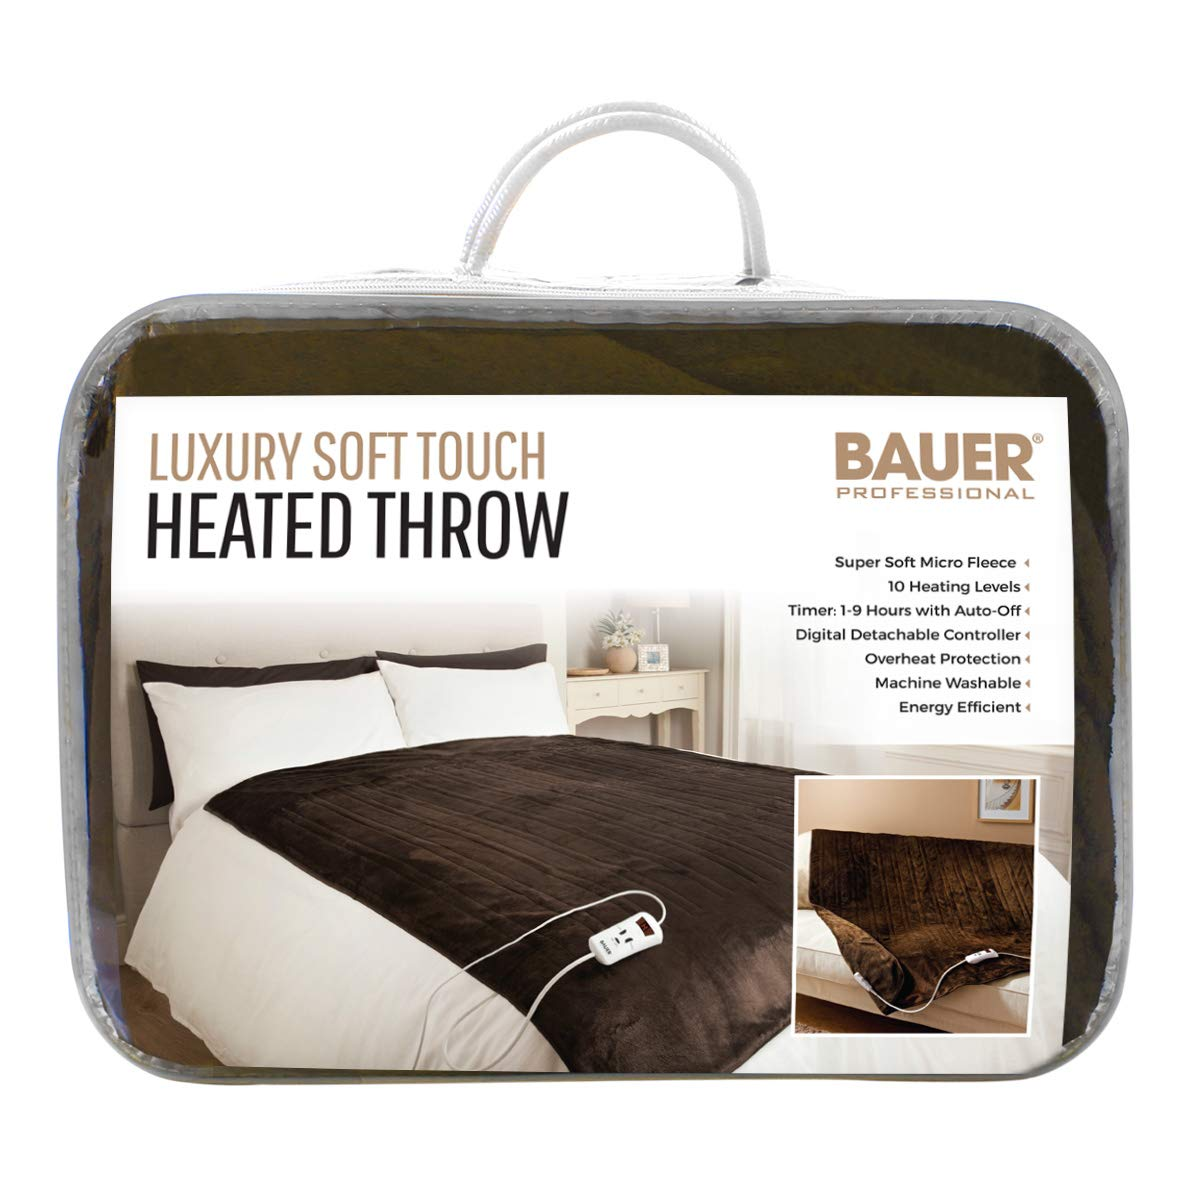 5c6b77ec6d1c Bauer Super Soft Touch Luxury Heated Sofa Blanket, Chocolate Brown  120x160cm: Amazon.co.uk: Health & Personal Care